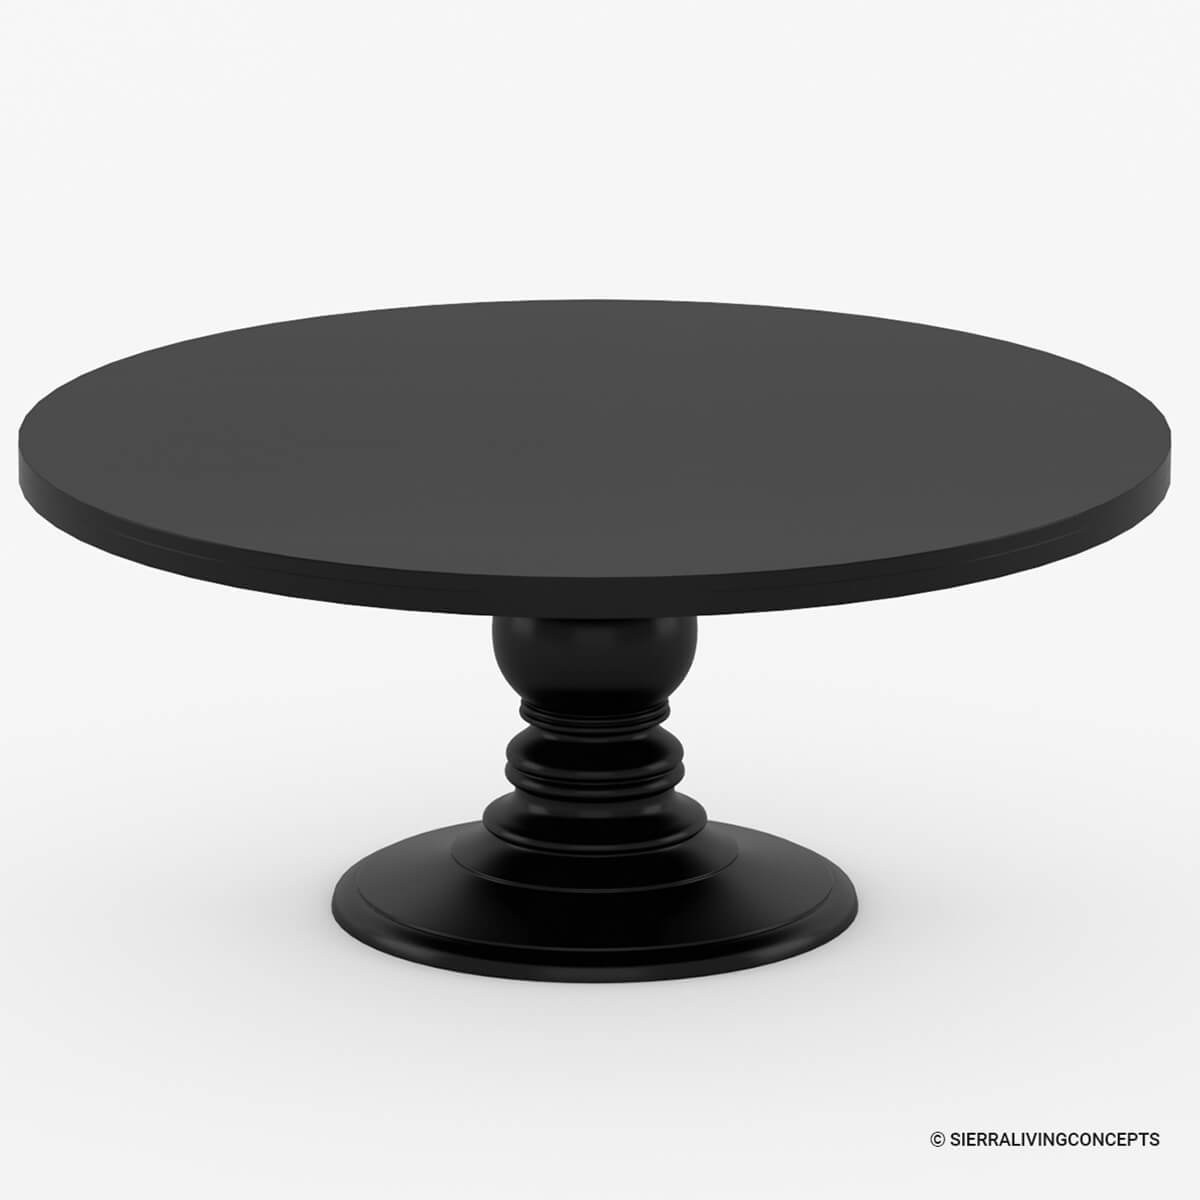 Nottingham Rustic Solid Wood Black Round Dining Room Table Set : 71195 from www.sierralivingconcepts.com size 1200 x 1200 jpeg 256kB